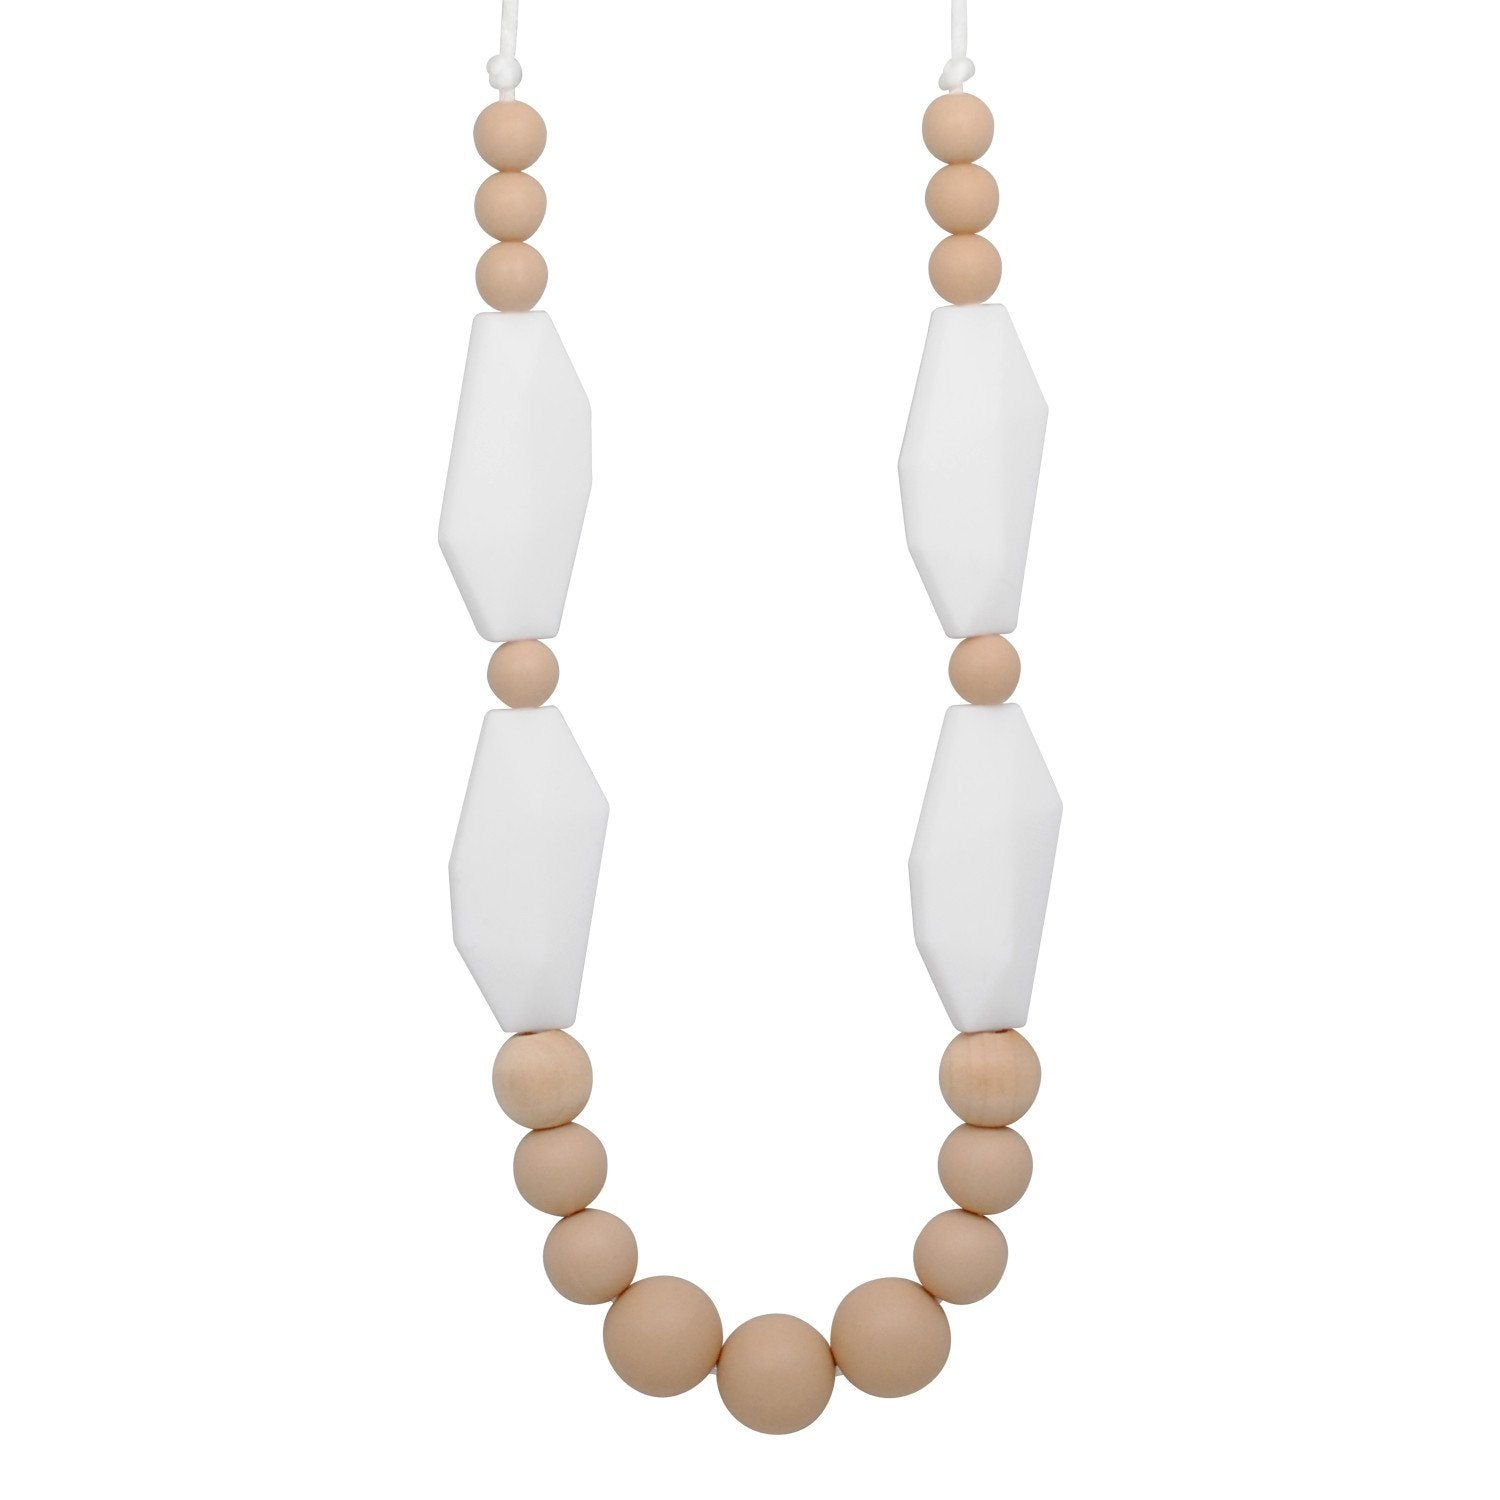 Silicone Teething Necklace - Haley - Glitter & Spice